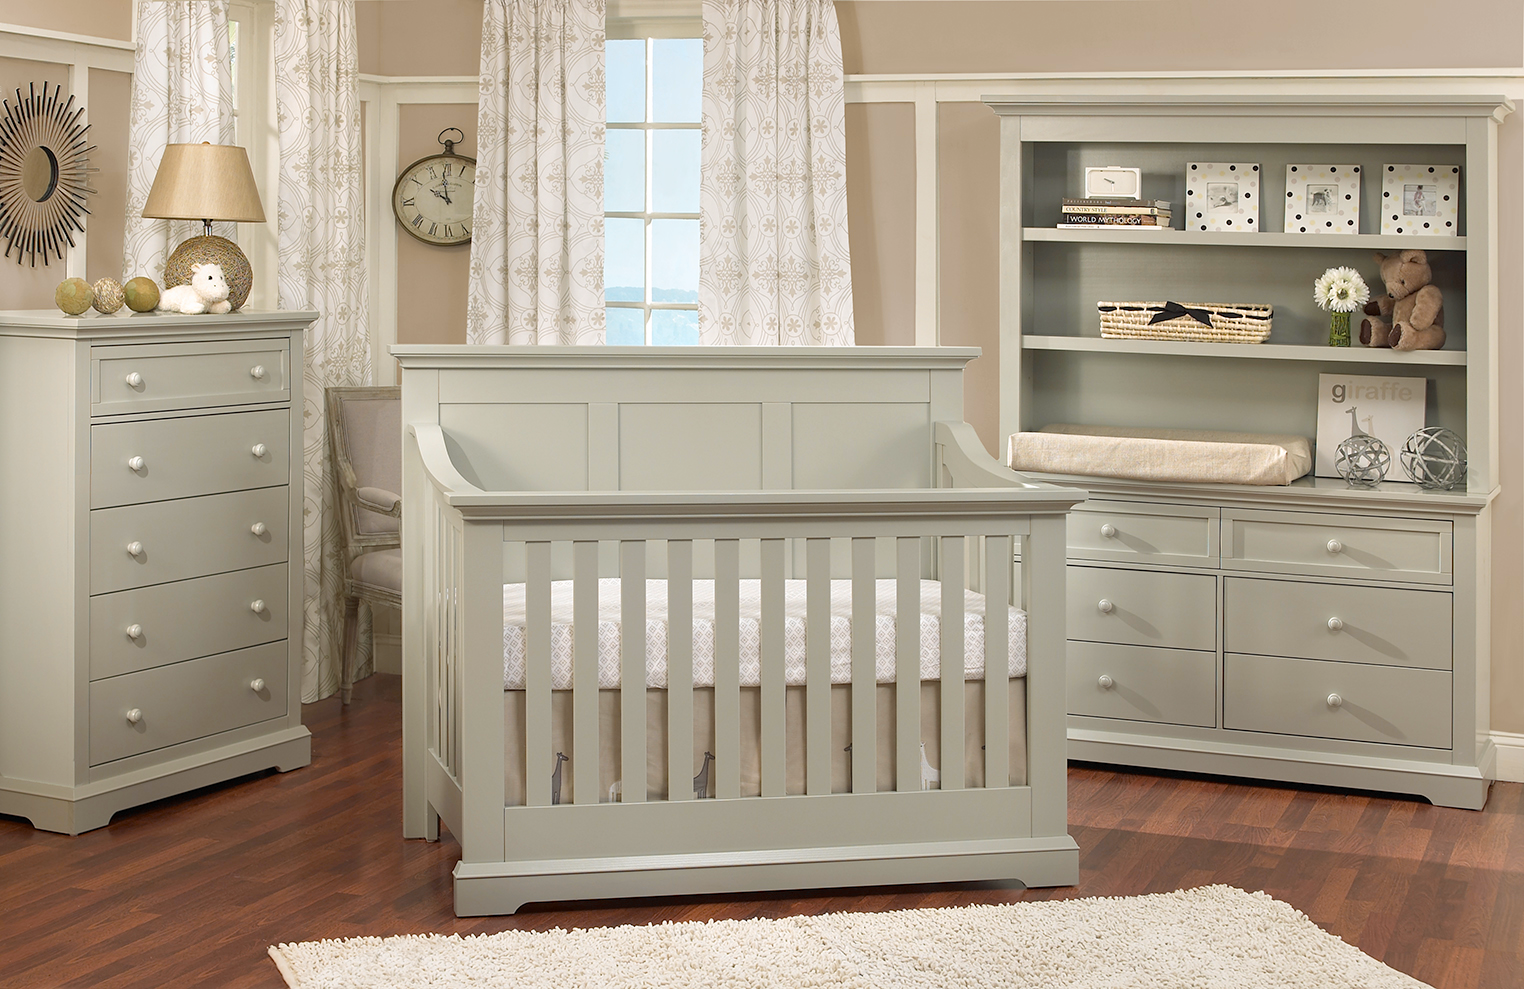 gainsboro crib by munire crib on wooden floor matched with cream wall plus window and curtain for nursery decor ideas